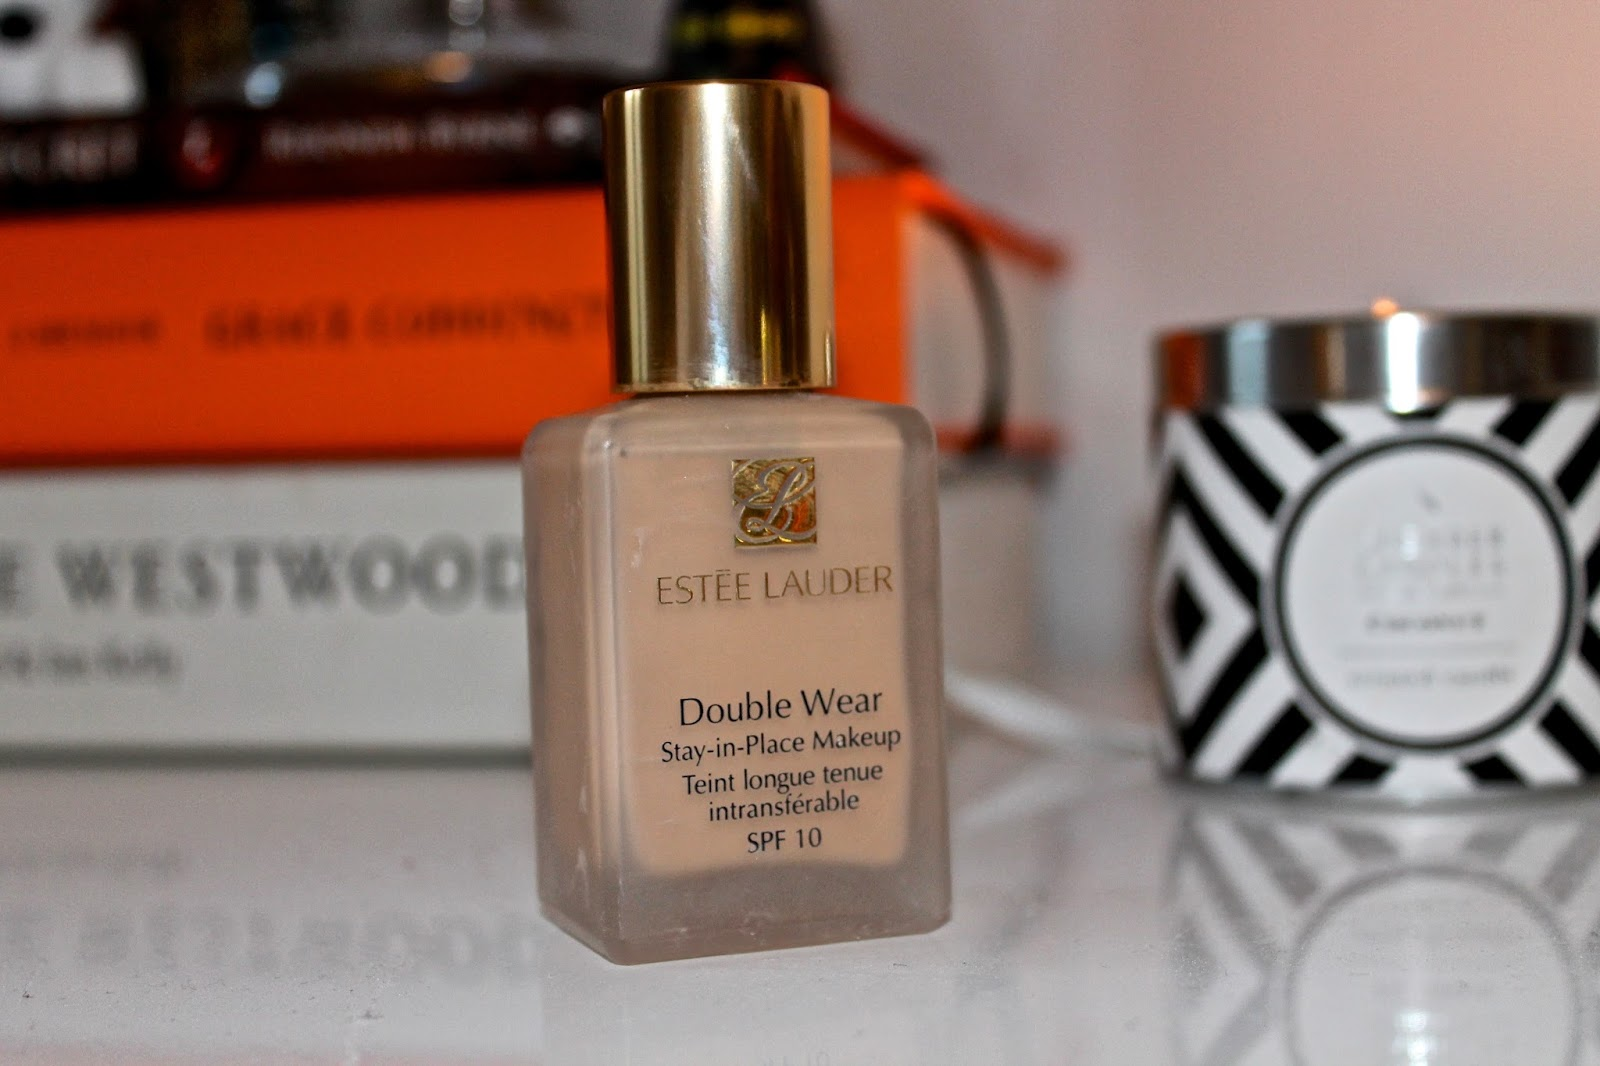 Review / Estee Lauder Double Wear Foundation